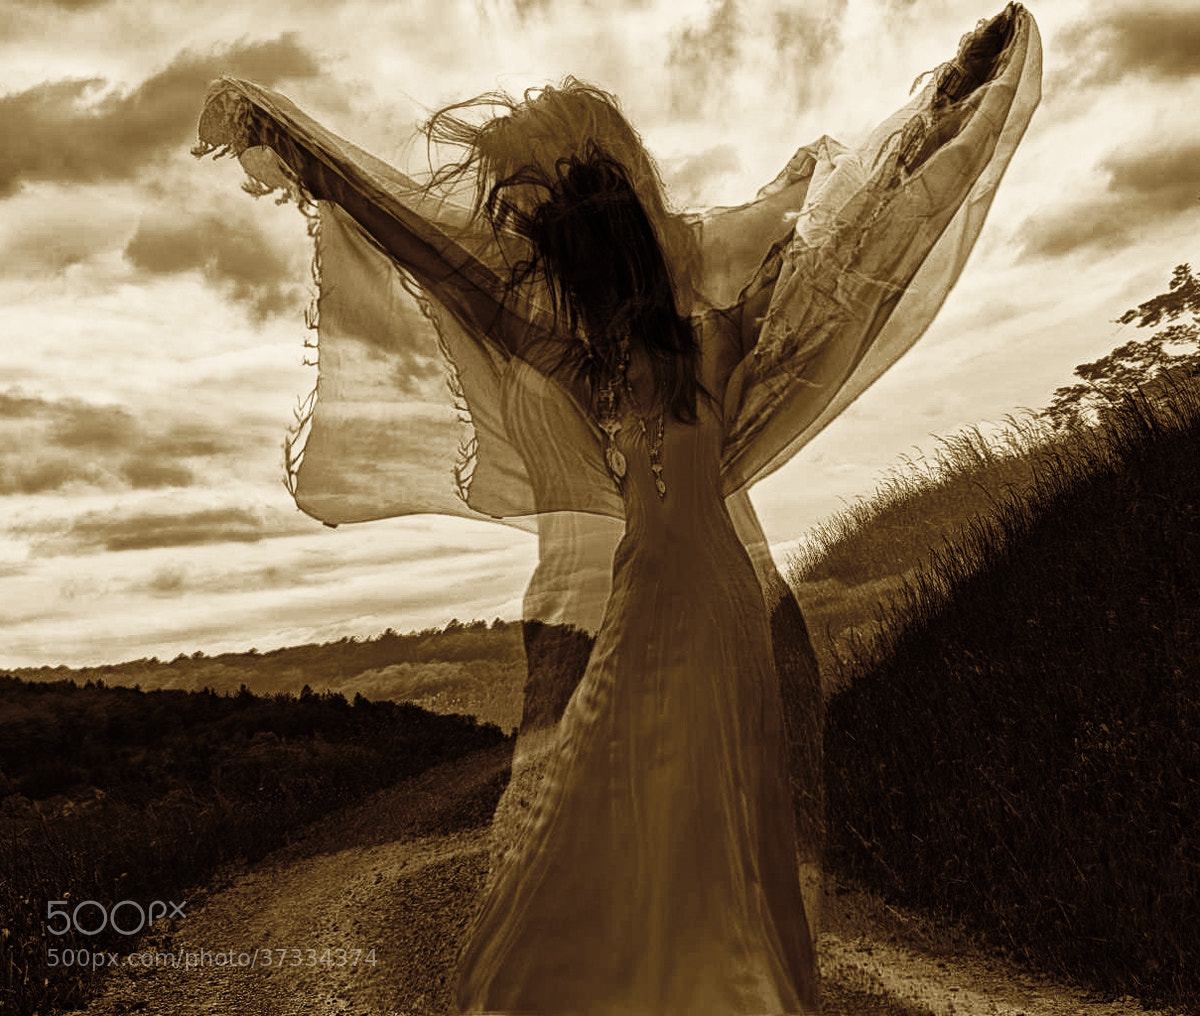 Photograph Send me an angel by Yoloshiku on 500px